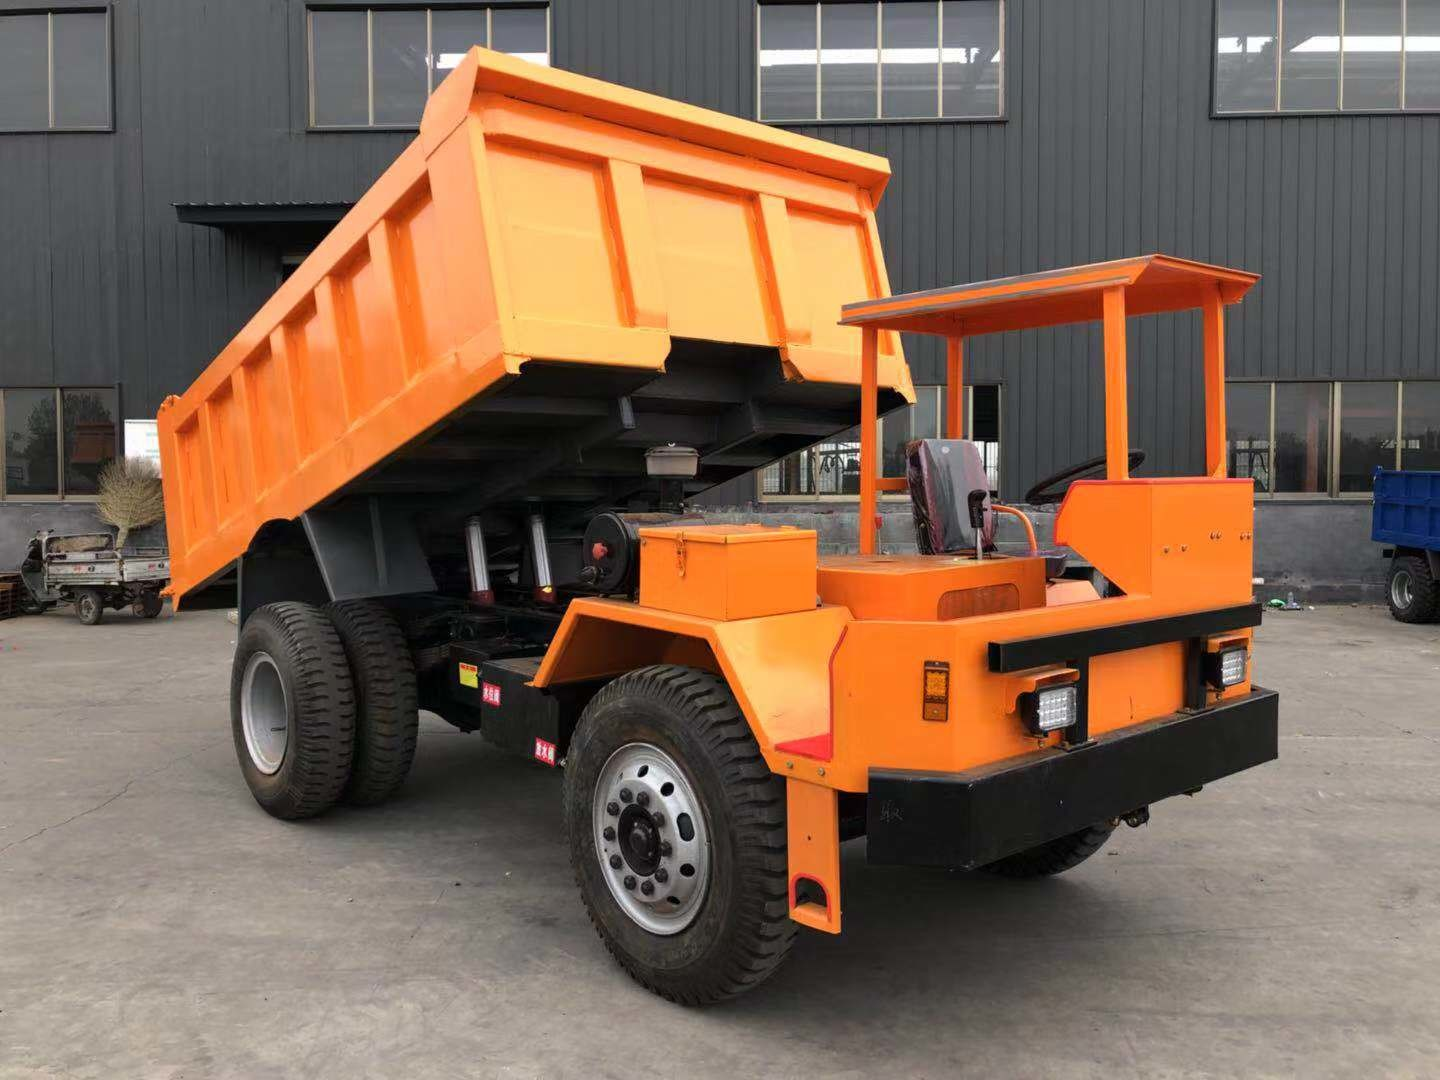 LN22160 12T Industrial Dump Truck With 118KW Engine Power And 6.3m3 Boxes Volume